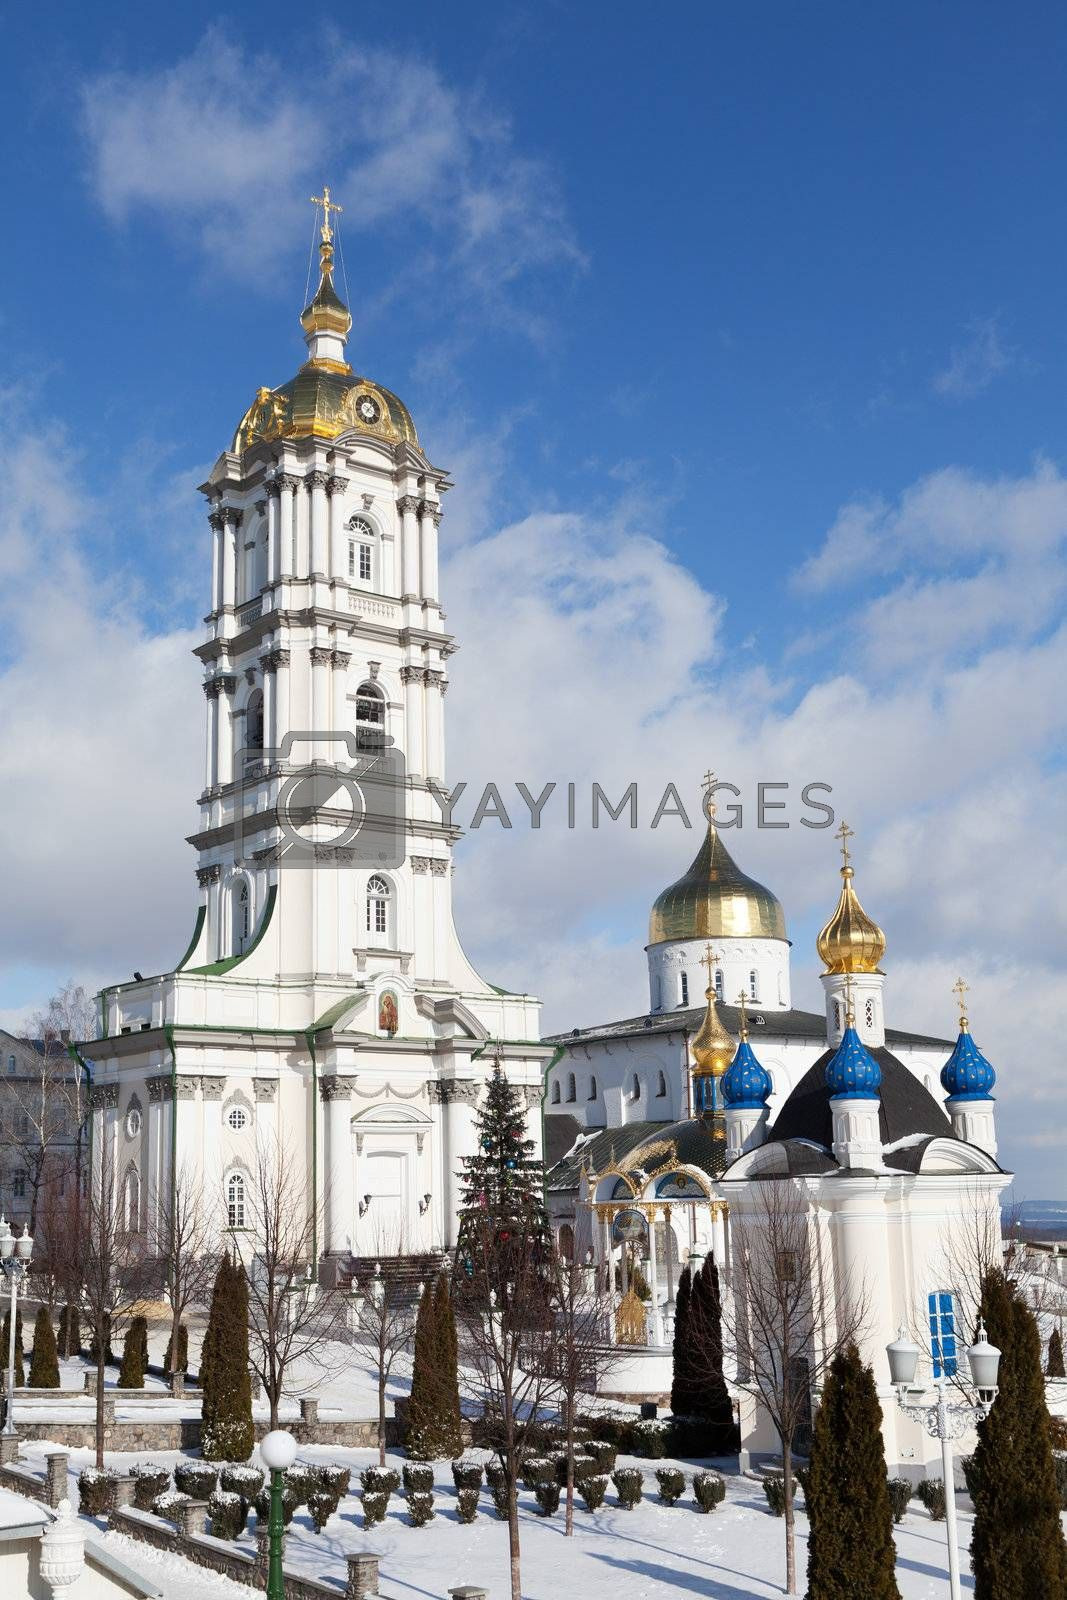 Belfry, dome and church of ancient sacred Christian Pochaev Monastery of Holy Dormition on blue cloudy sky background. Western Ukraine, Ternopol region, 16th century